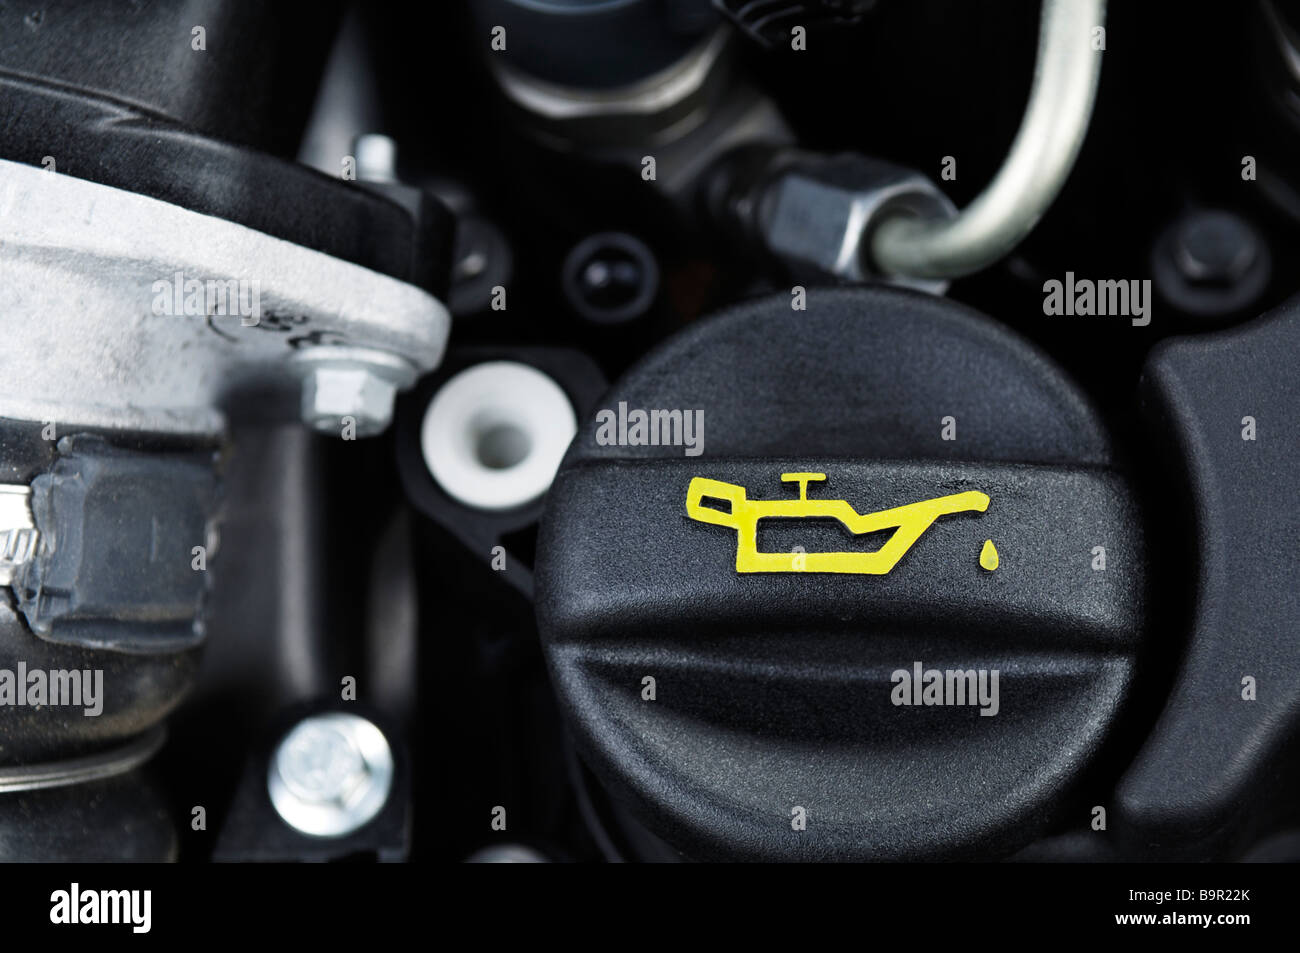 car oil filler cap photos car oil filler cap images alamy. Black Bedroom Furniture Sets. Home Design Ideas